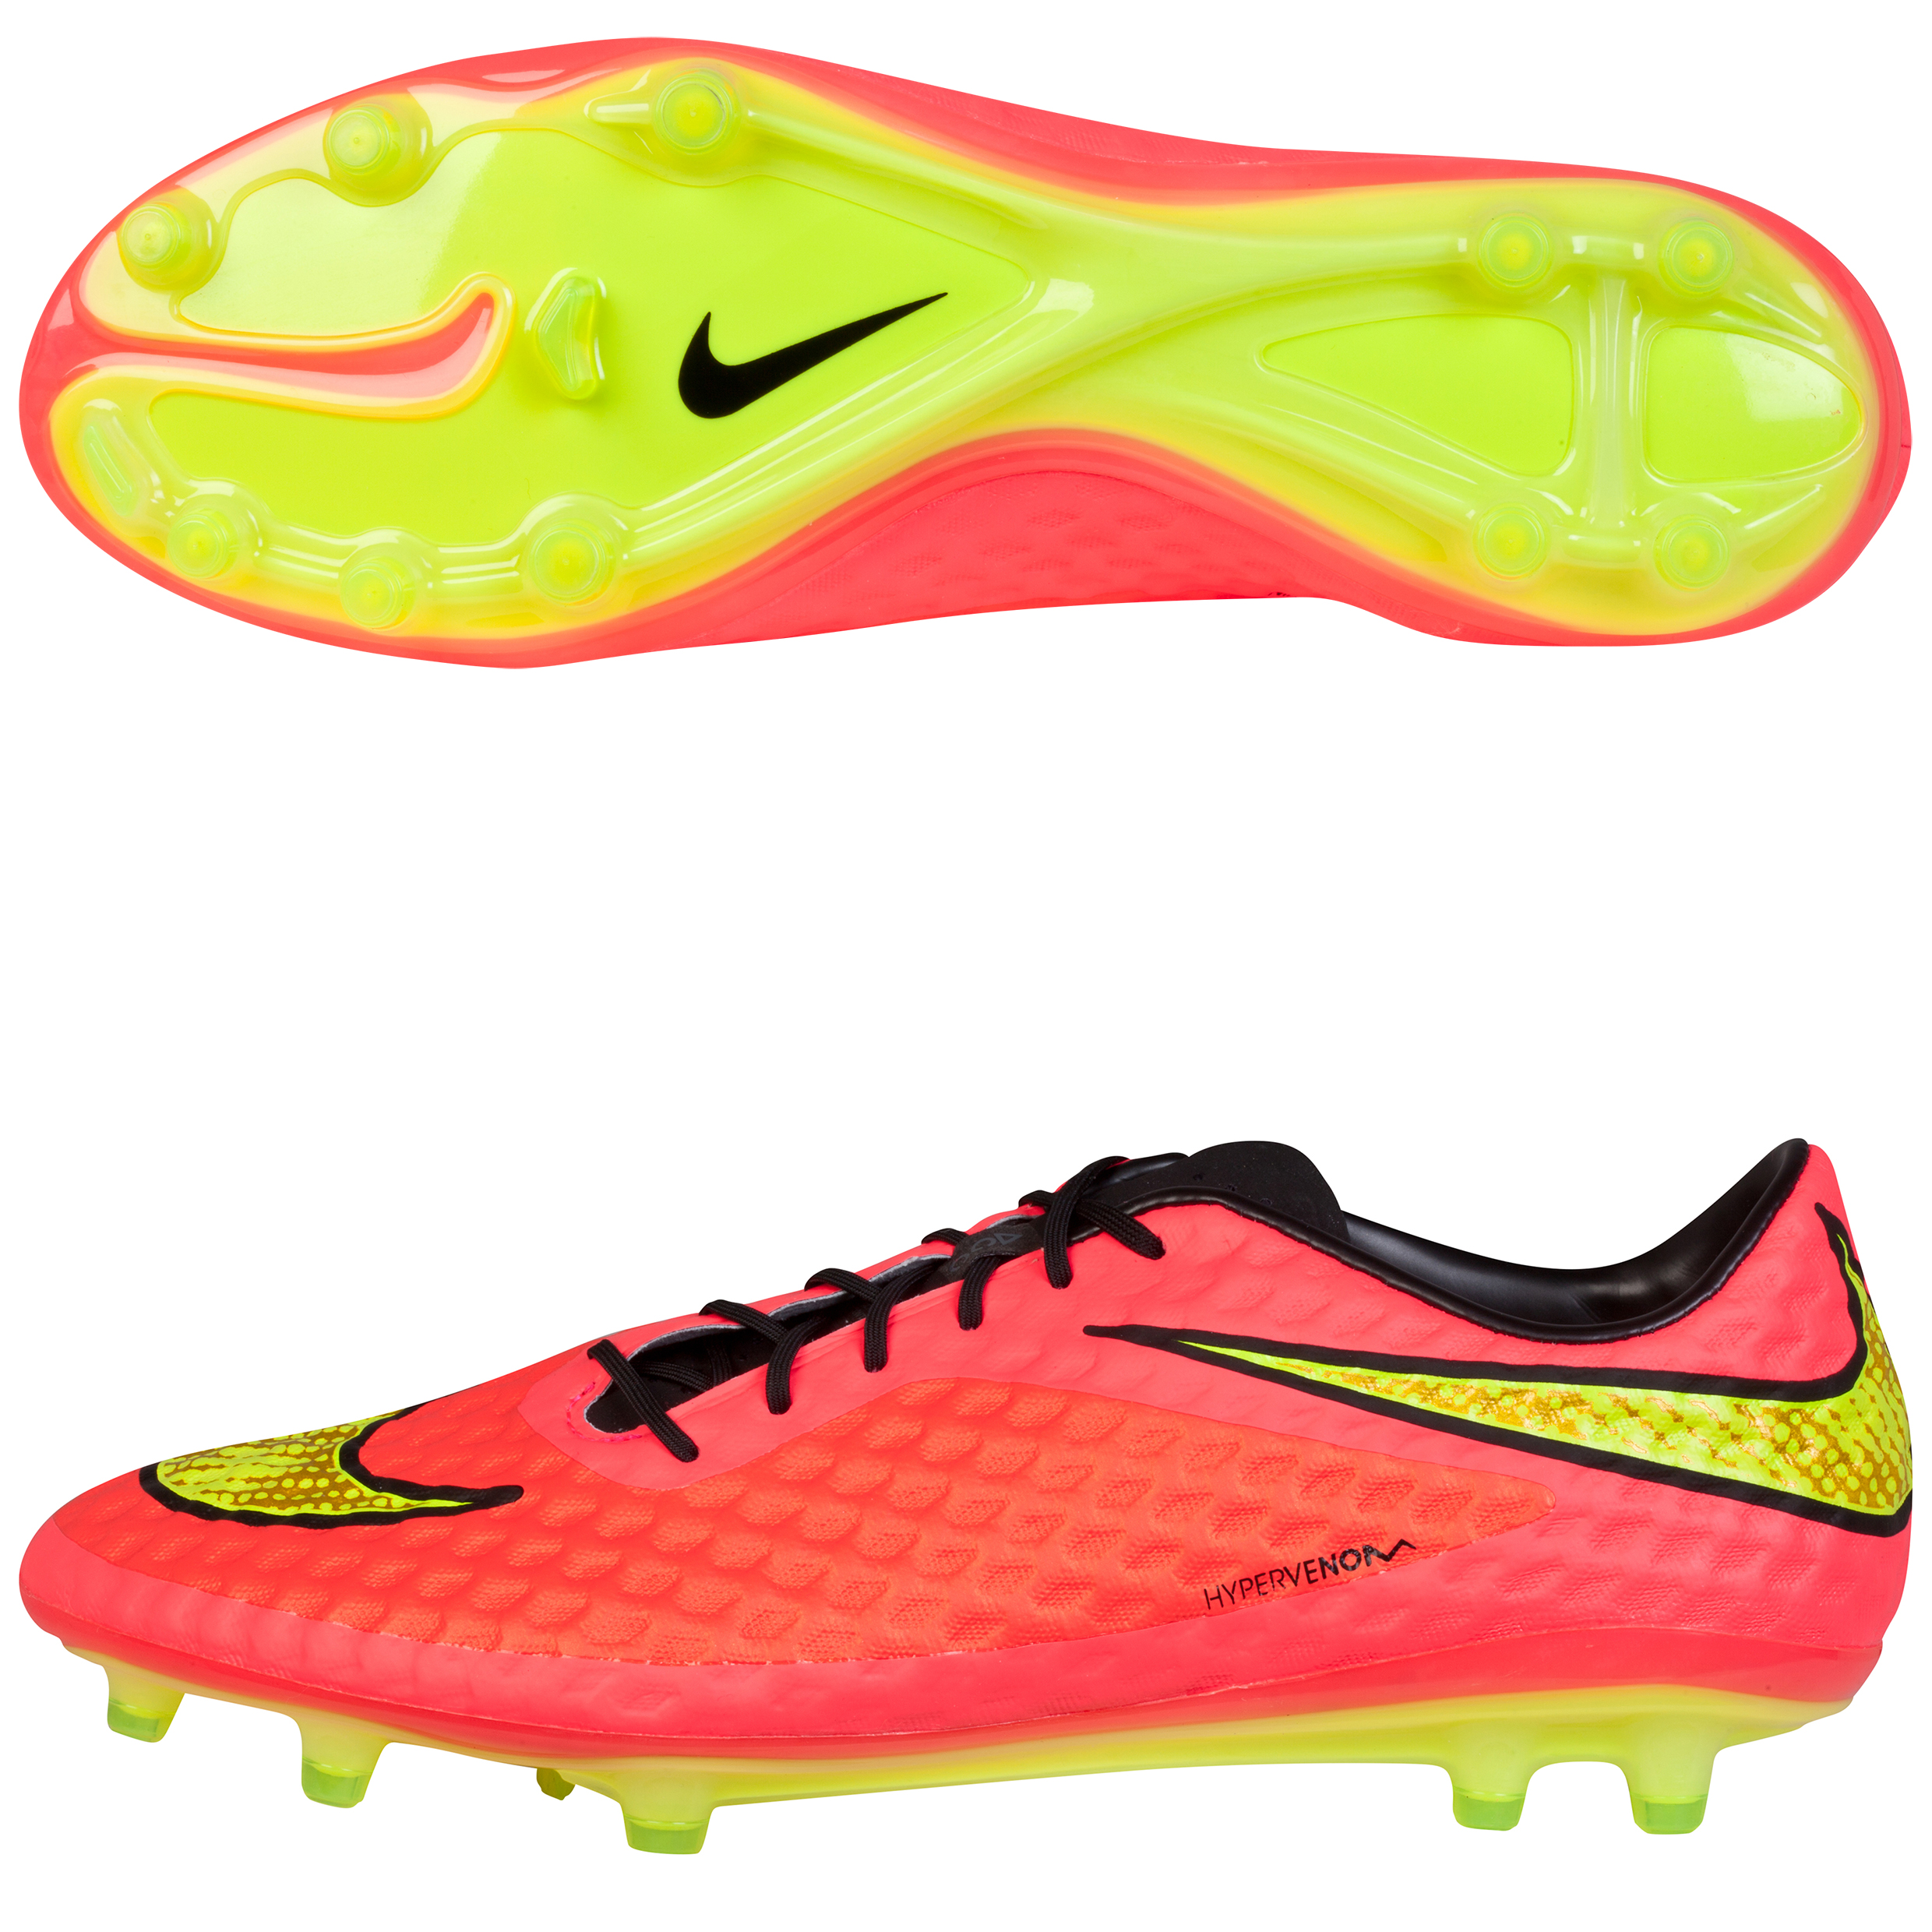 Nike Hypervenom Phantom Firm Ground Football Boots Red